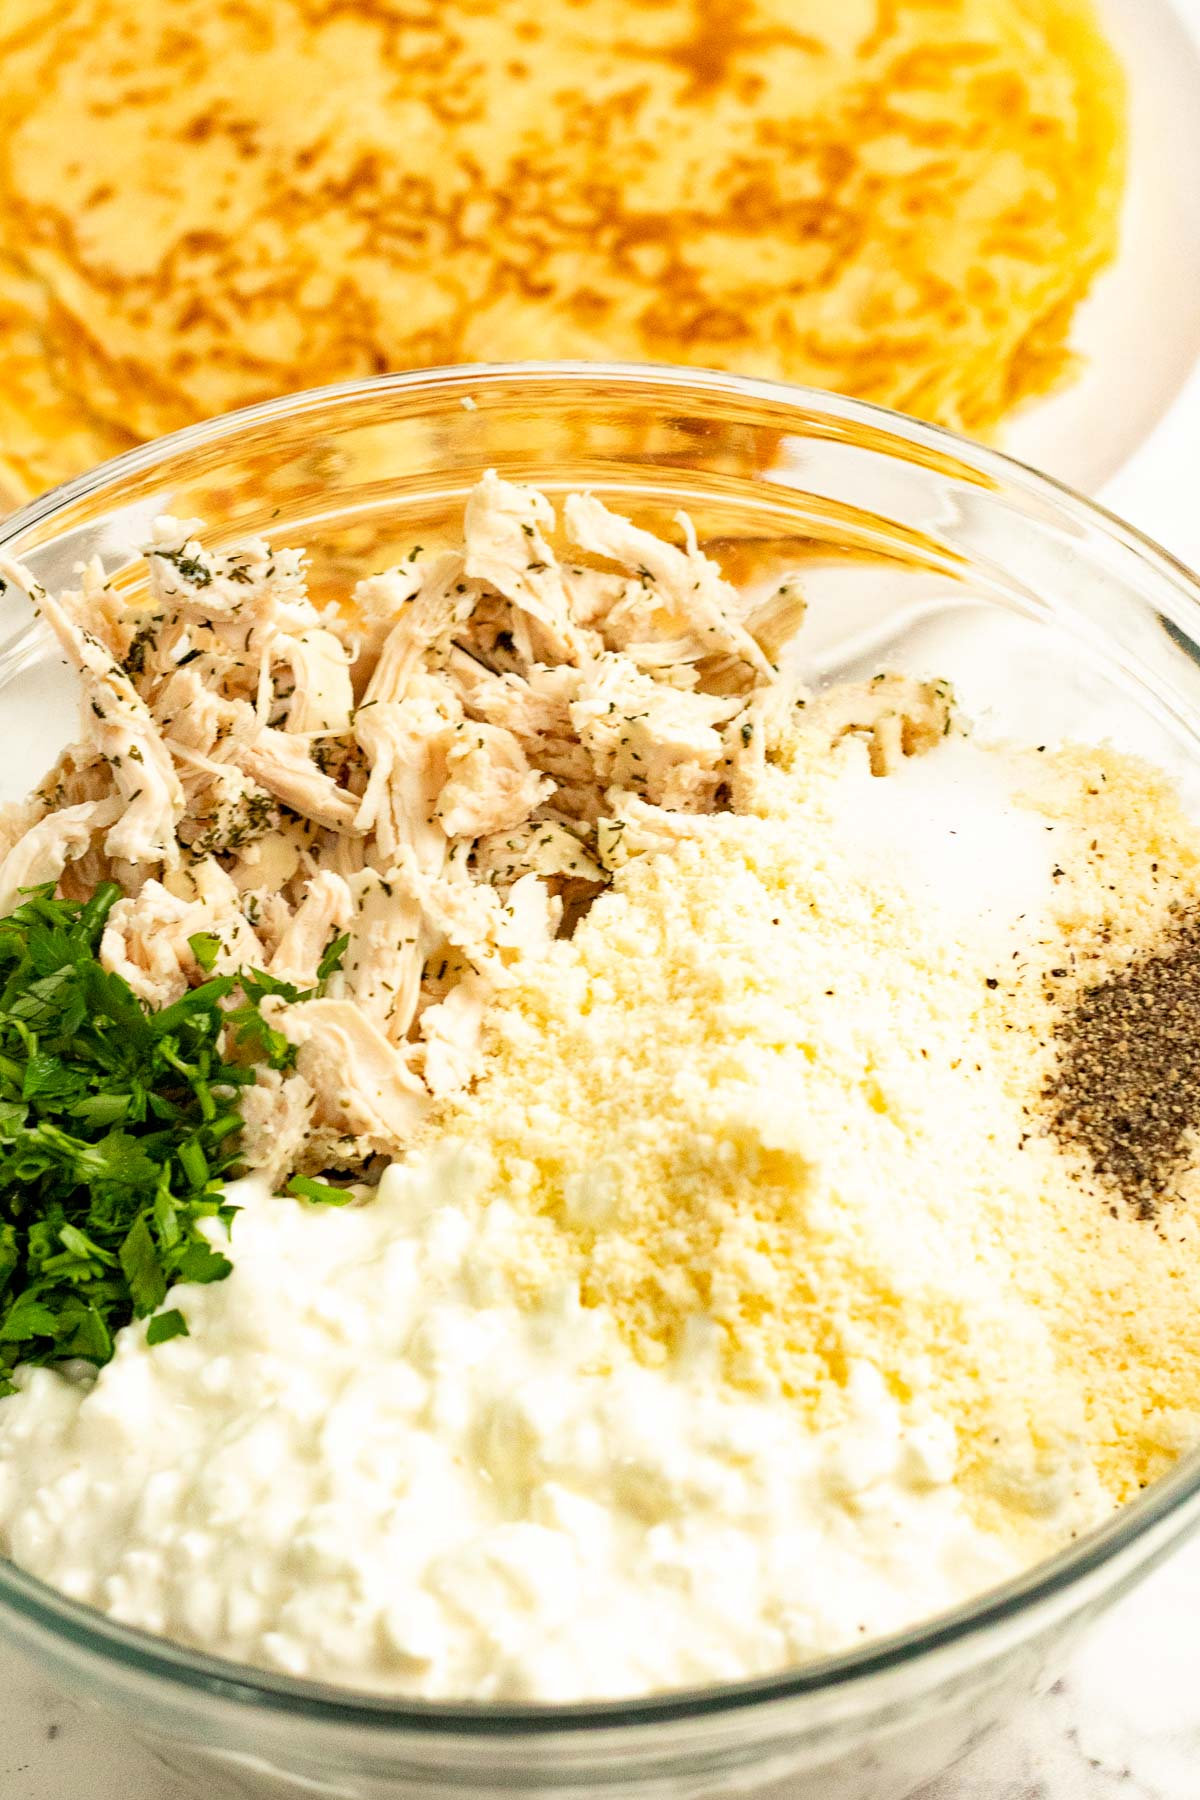 Savory chicken crepe filling ingredients in a bowl.